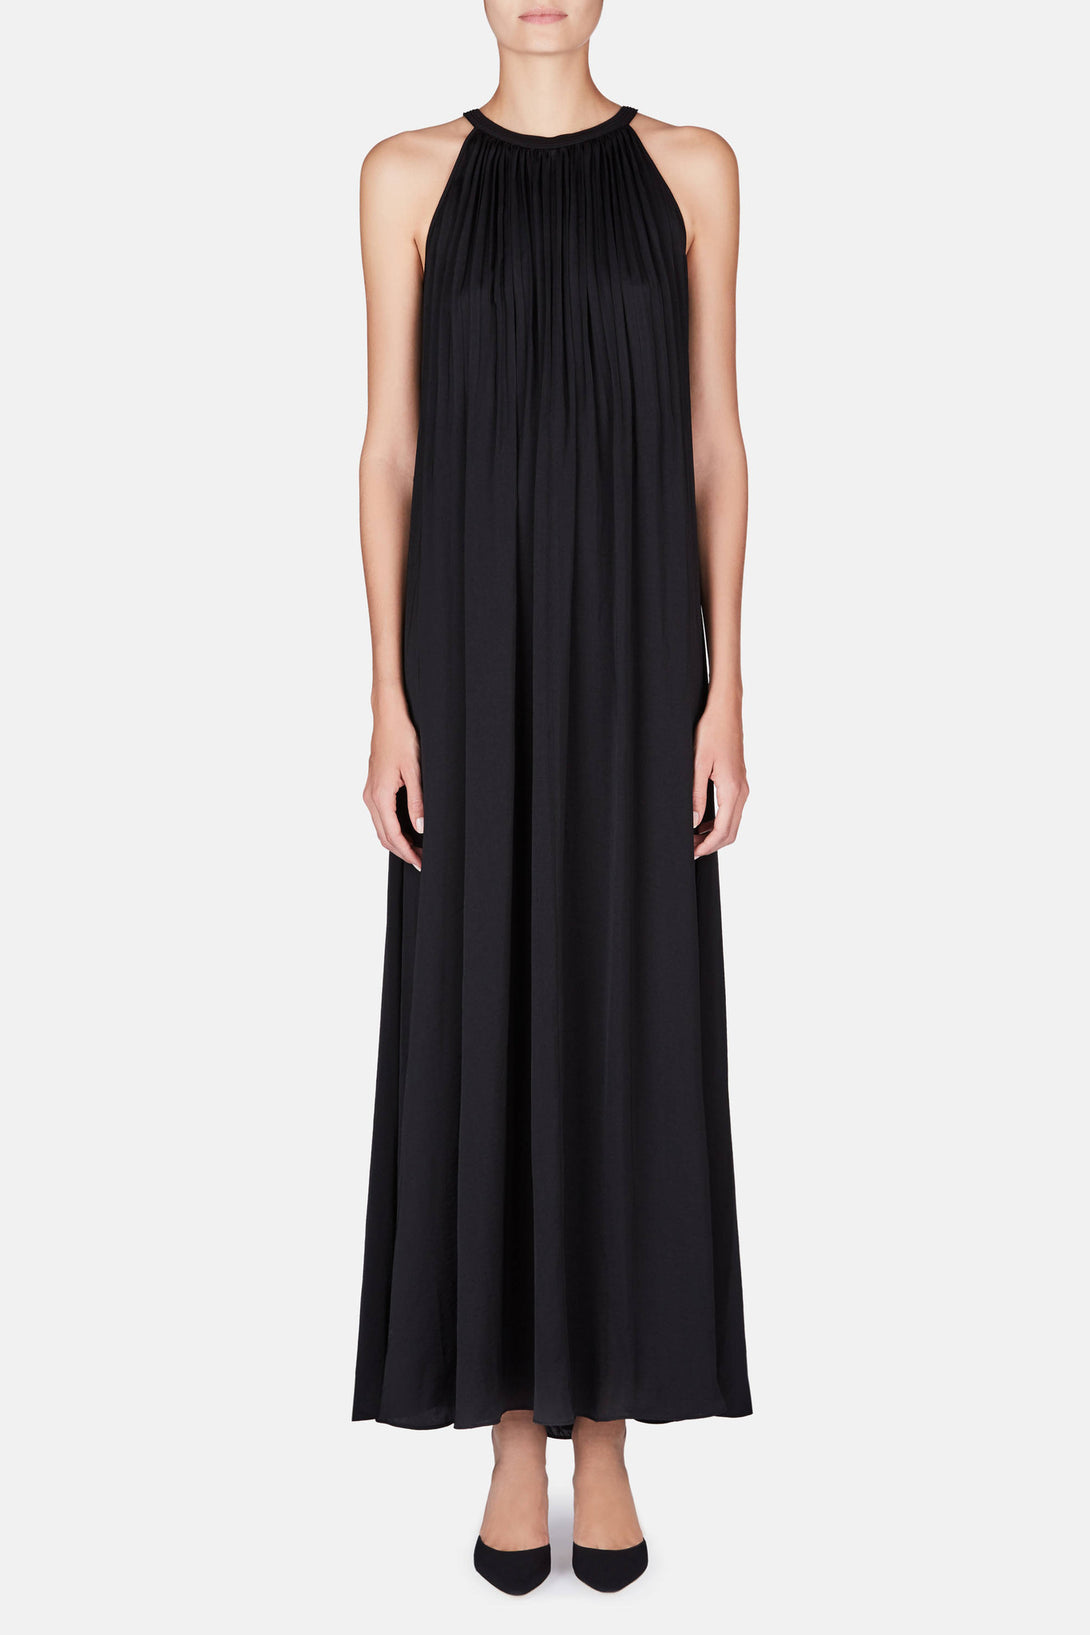 Sunburst Pleat Maxi Dress - Black